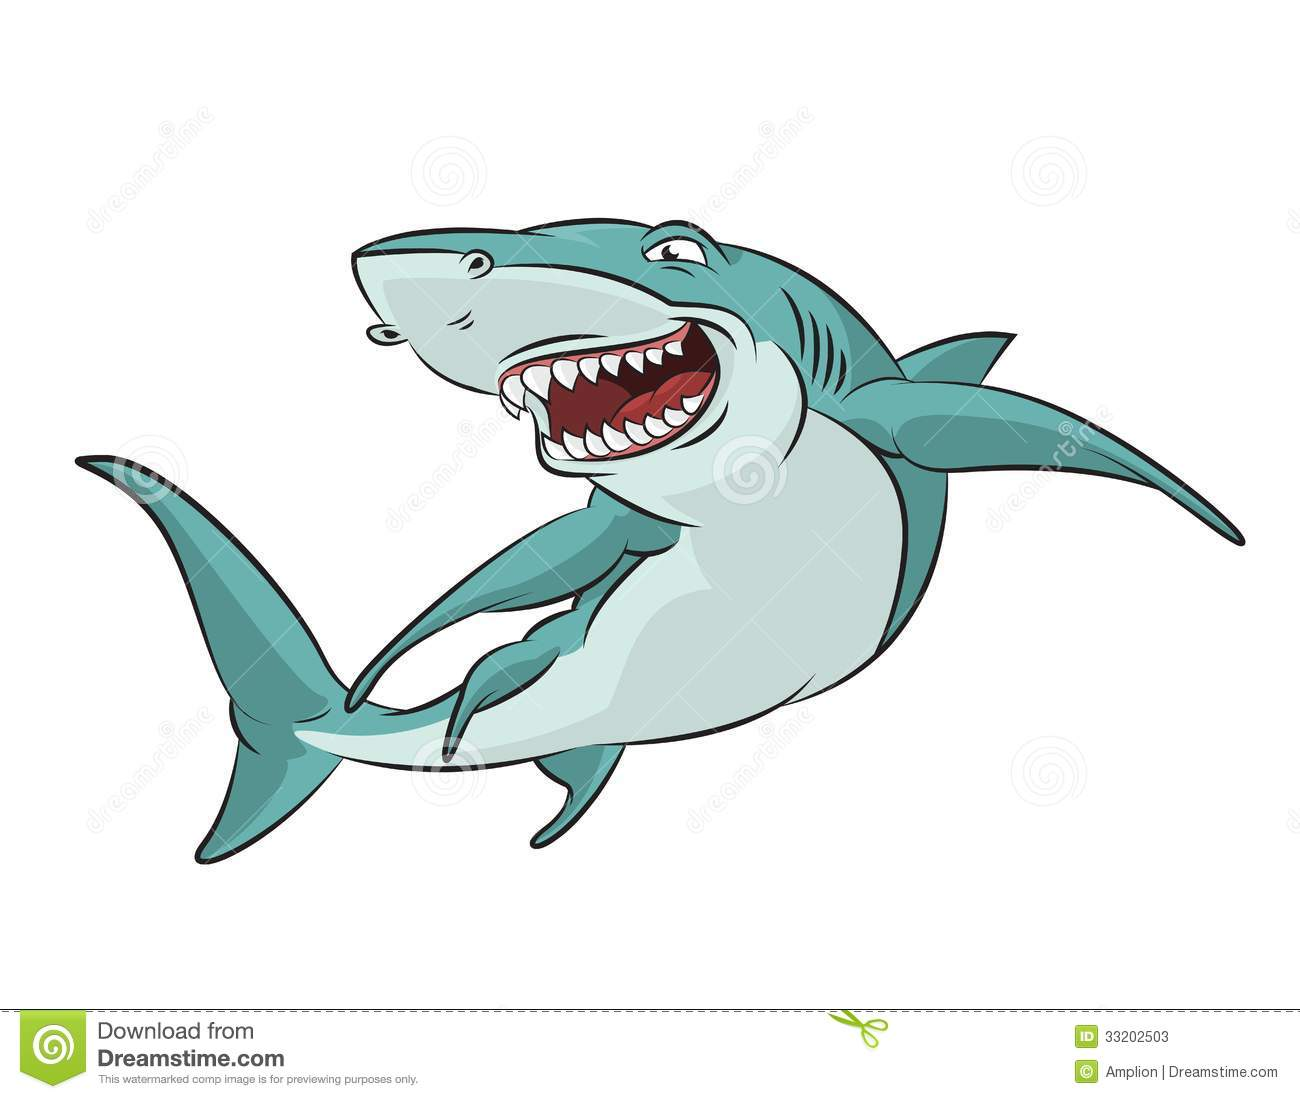 Cartoon Shark Stock Photos - Image: 33202503